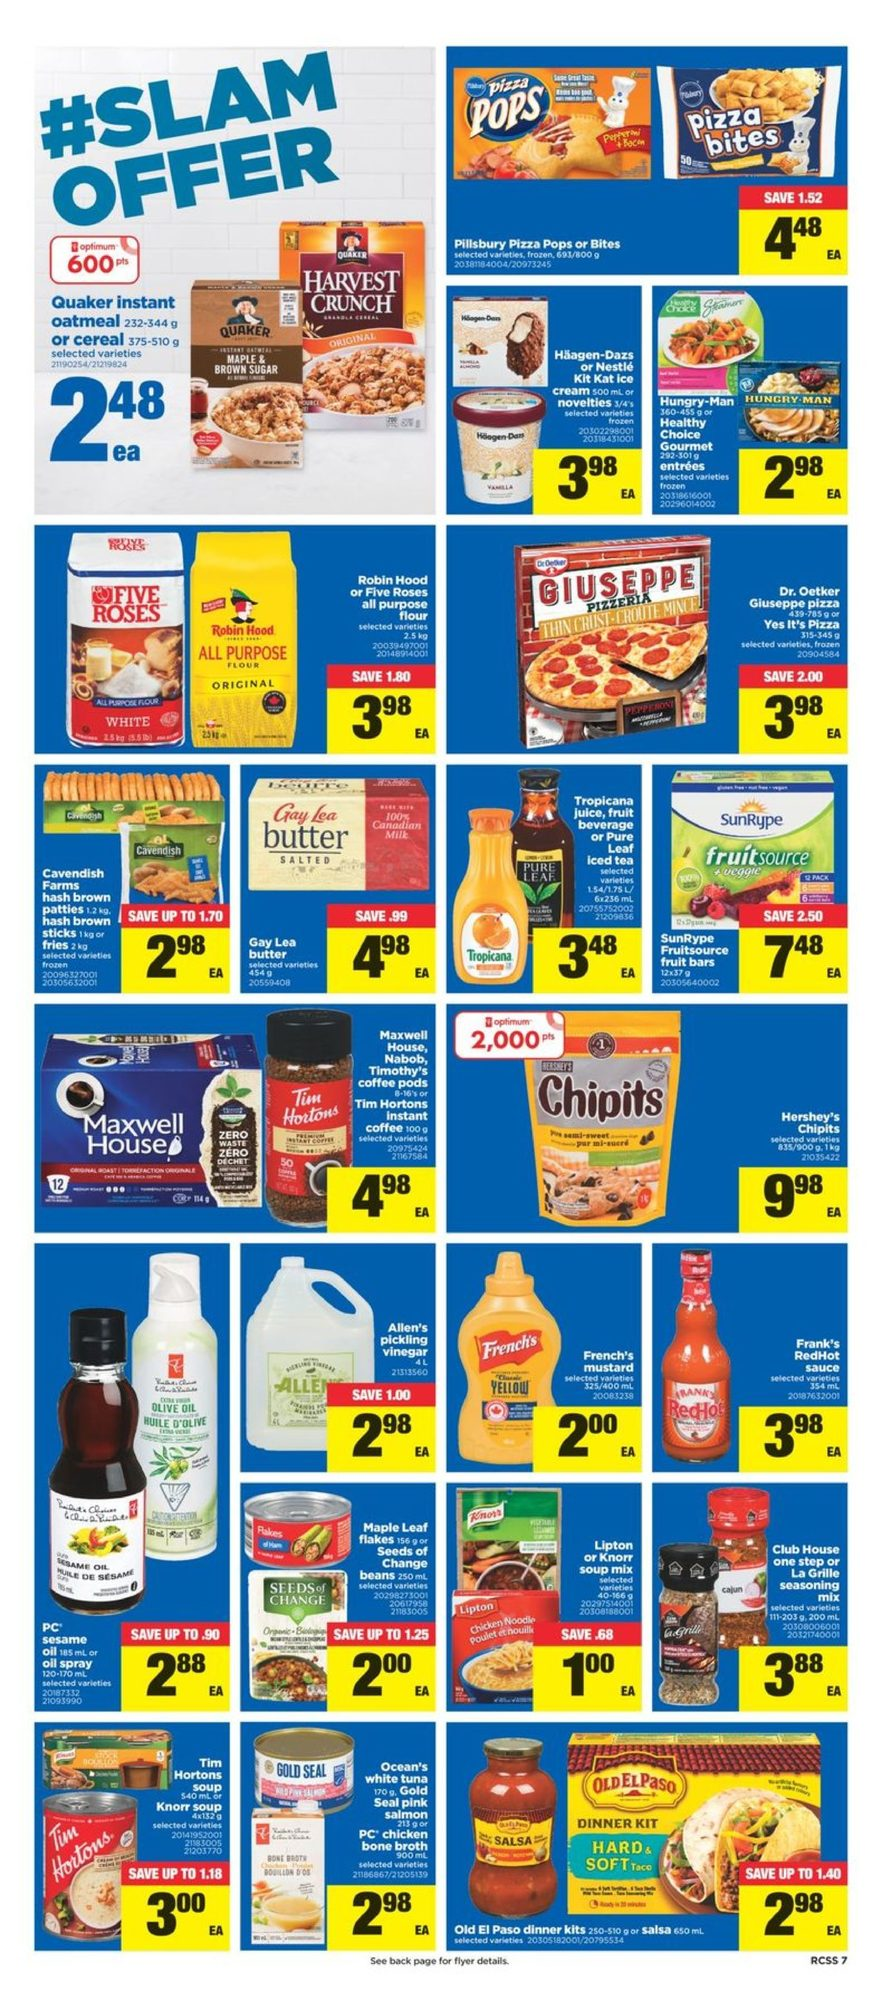 Real Canadian Superstore - Weekly Flyer Specials - Page 7